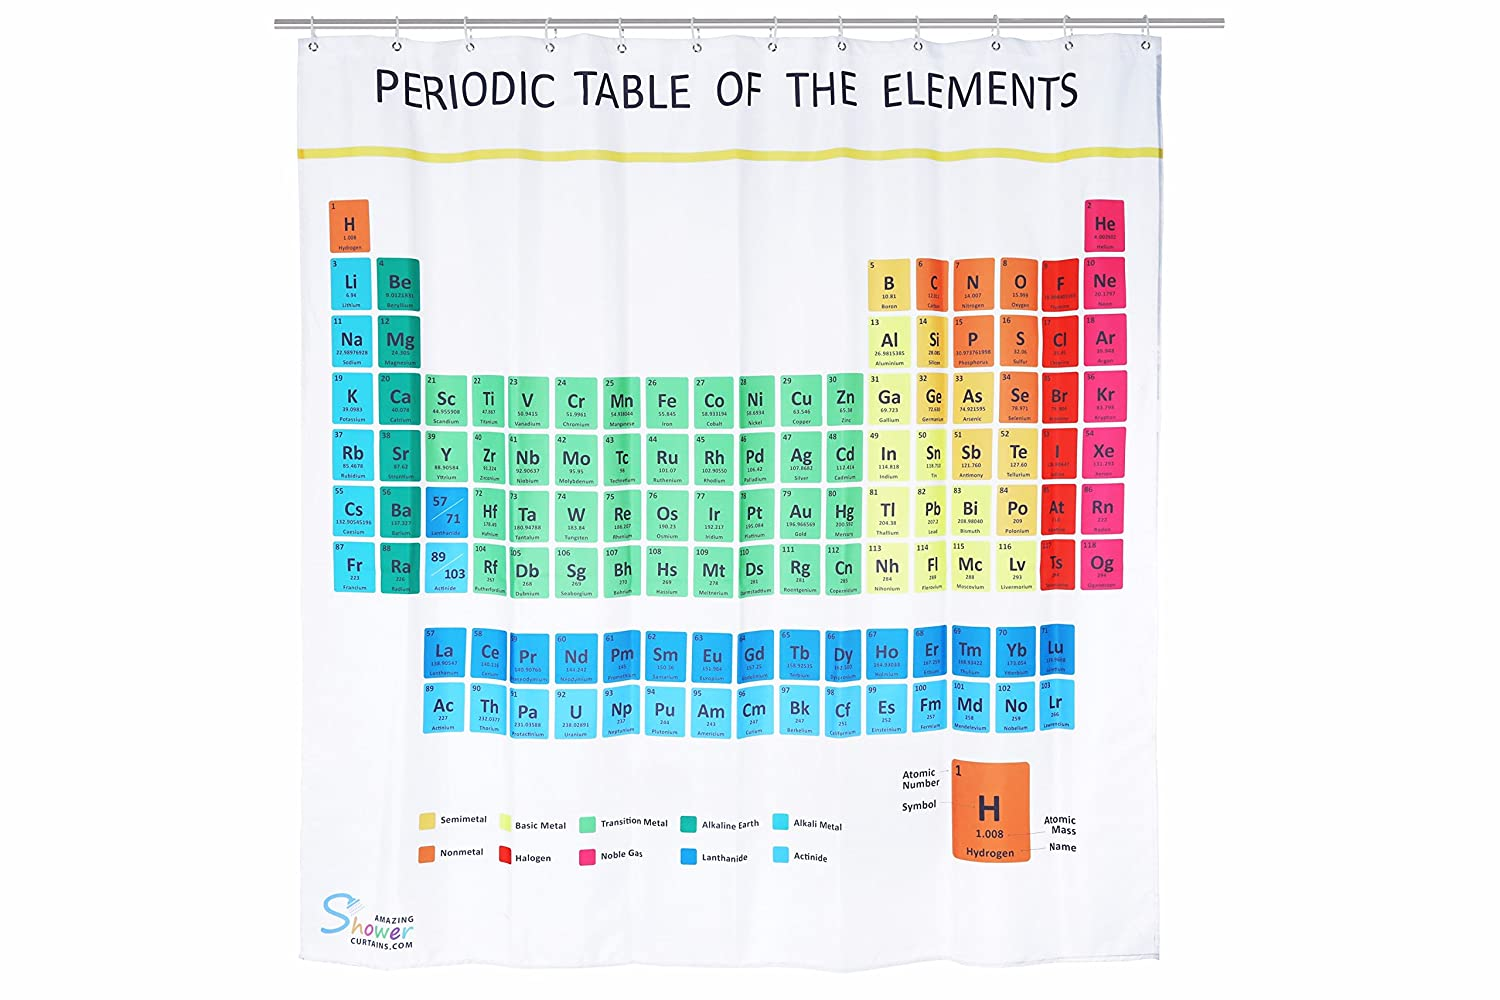 Atomic number 81 periodic table choice image periodic table images atomic number 81 periodic table choice image periodic table images atomic number 81 periodic table images gamestrikefo Images